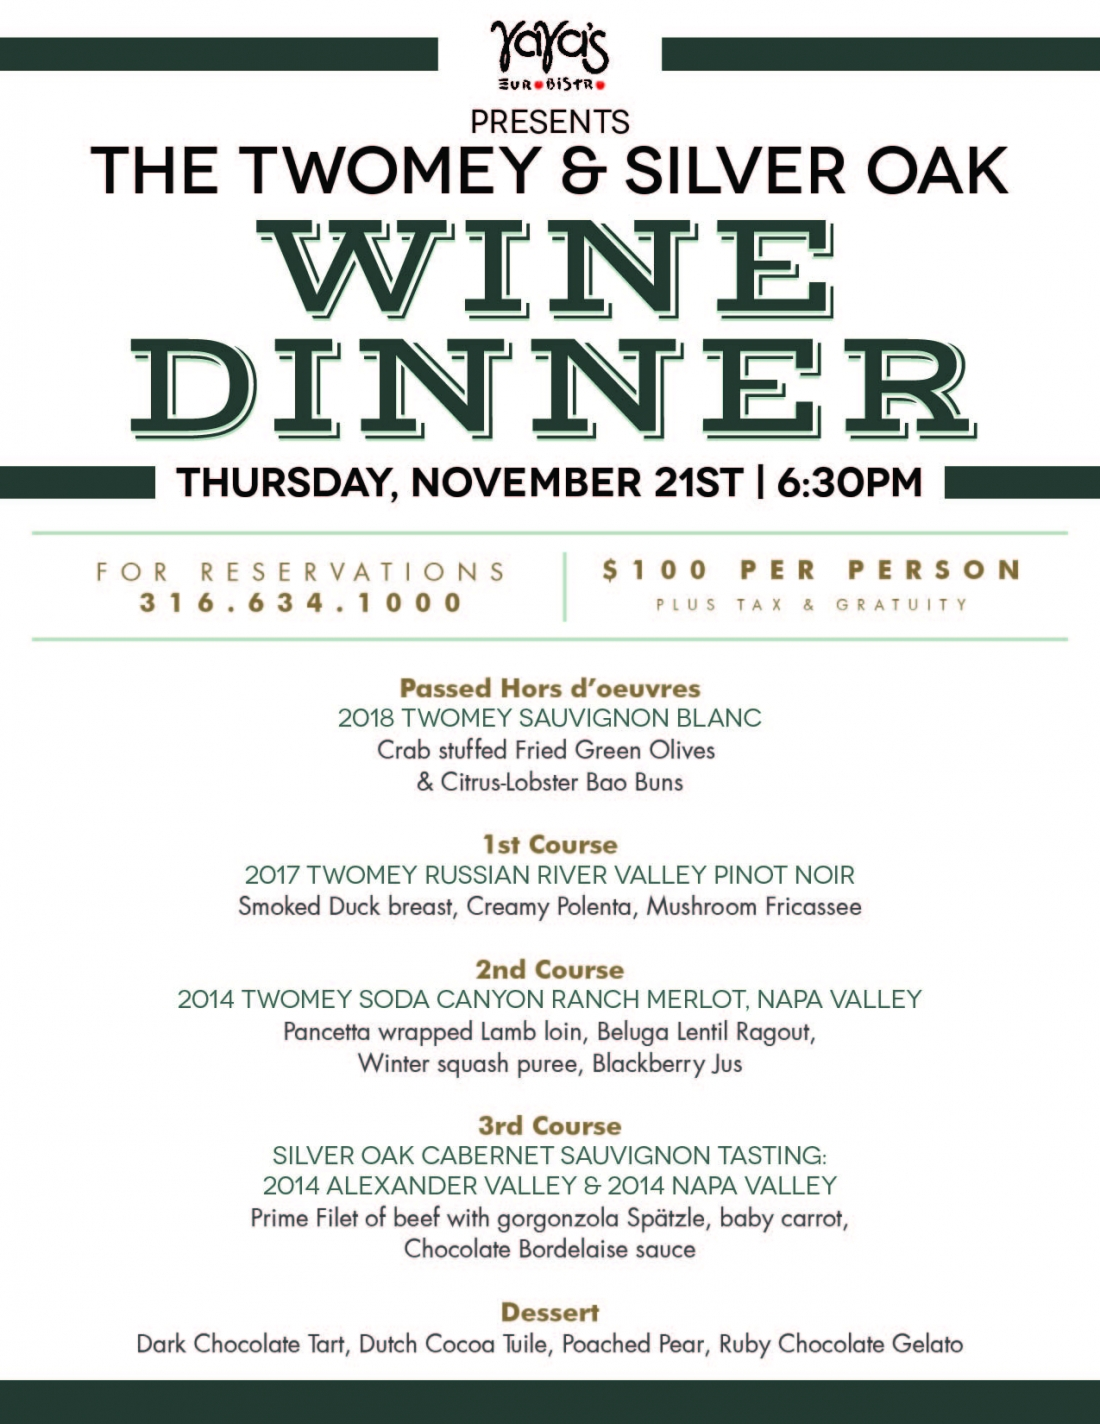 Twomey & Silver Oak Wine Dinner